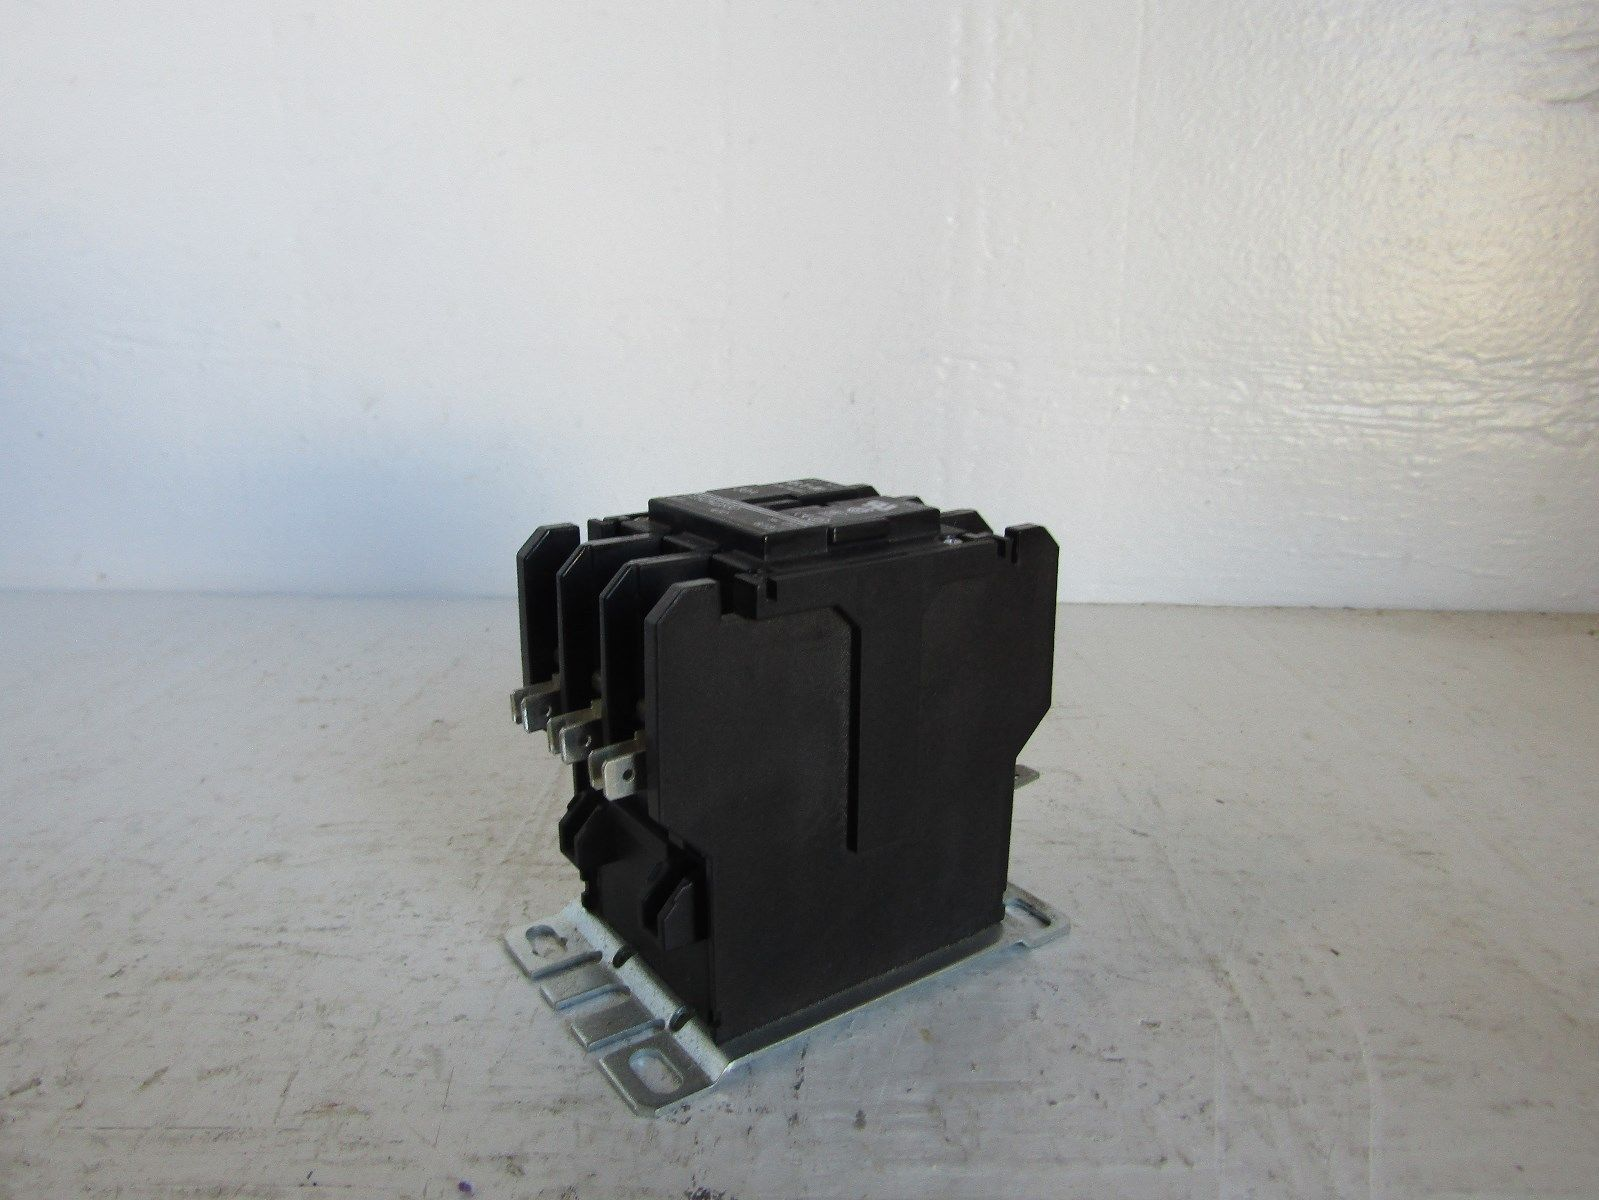 CUTLER HAMMER C25DND330 30 AMP 3 POLE CONTACTOR 120 VOLT COIL 331989252131 2?fit\=1000%2C750\&ssl\=1 c25dnd330 wiring diagram 3 phase contactor wiring diagram start Eaton C25dnf340 Contactor at cos-gaming.co